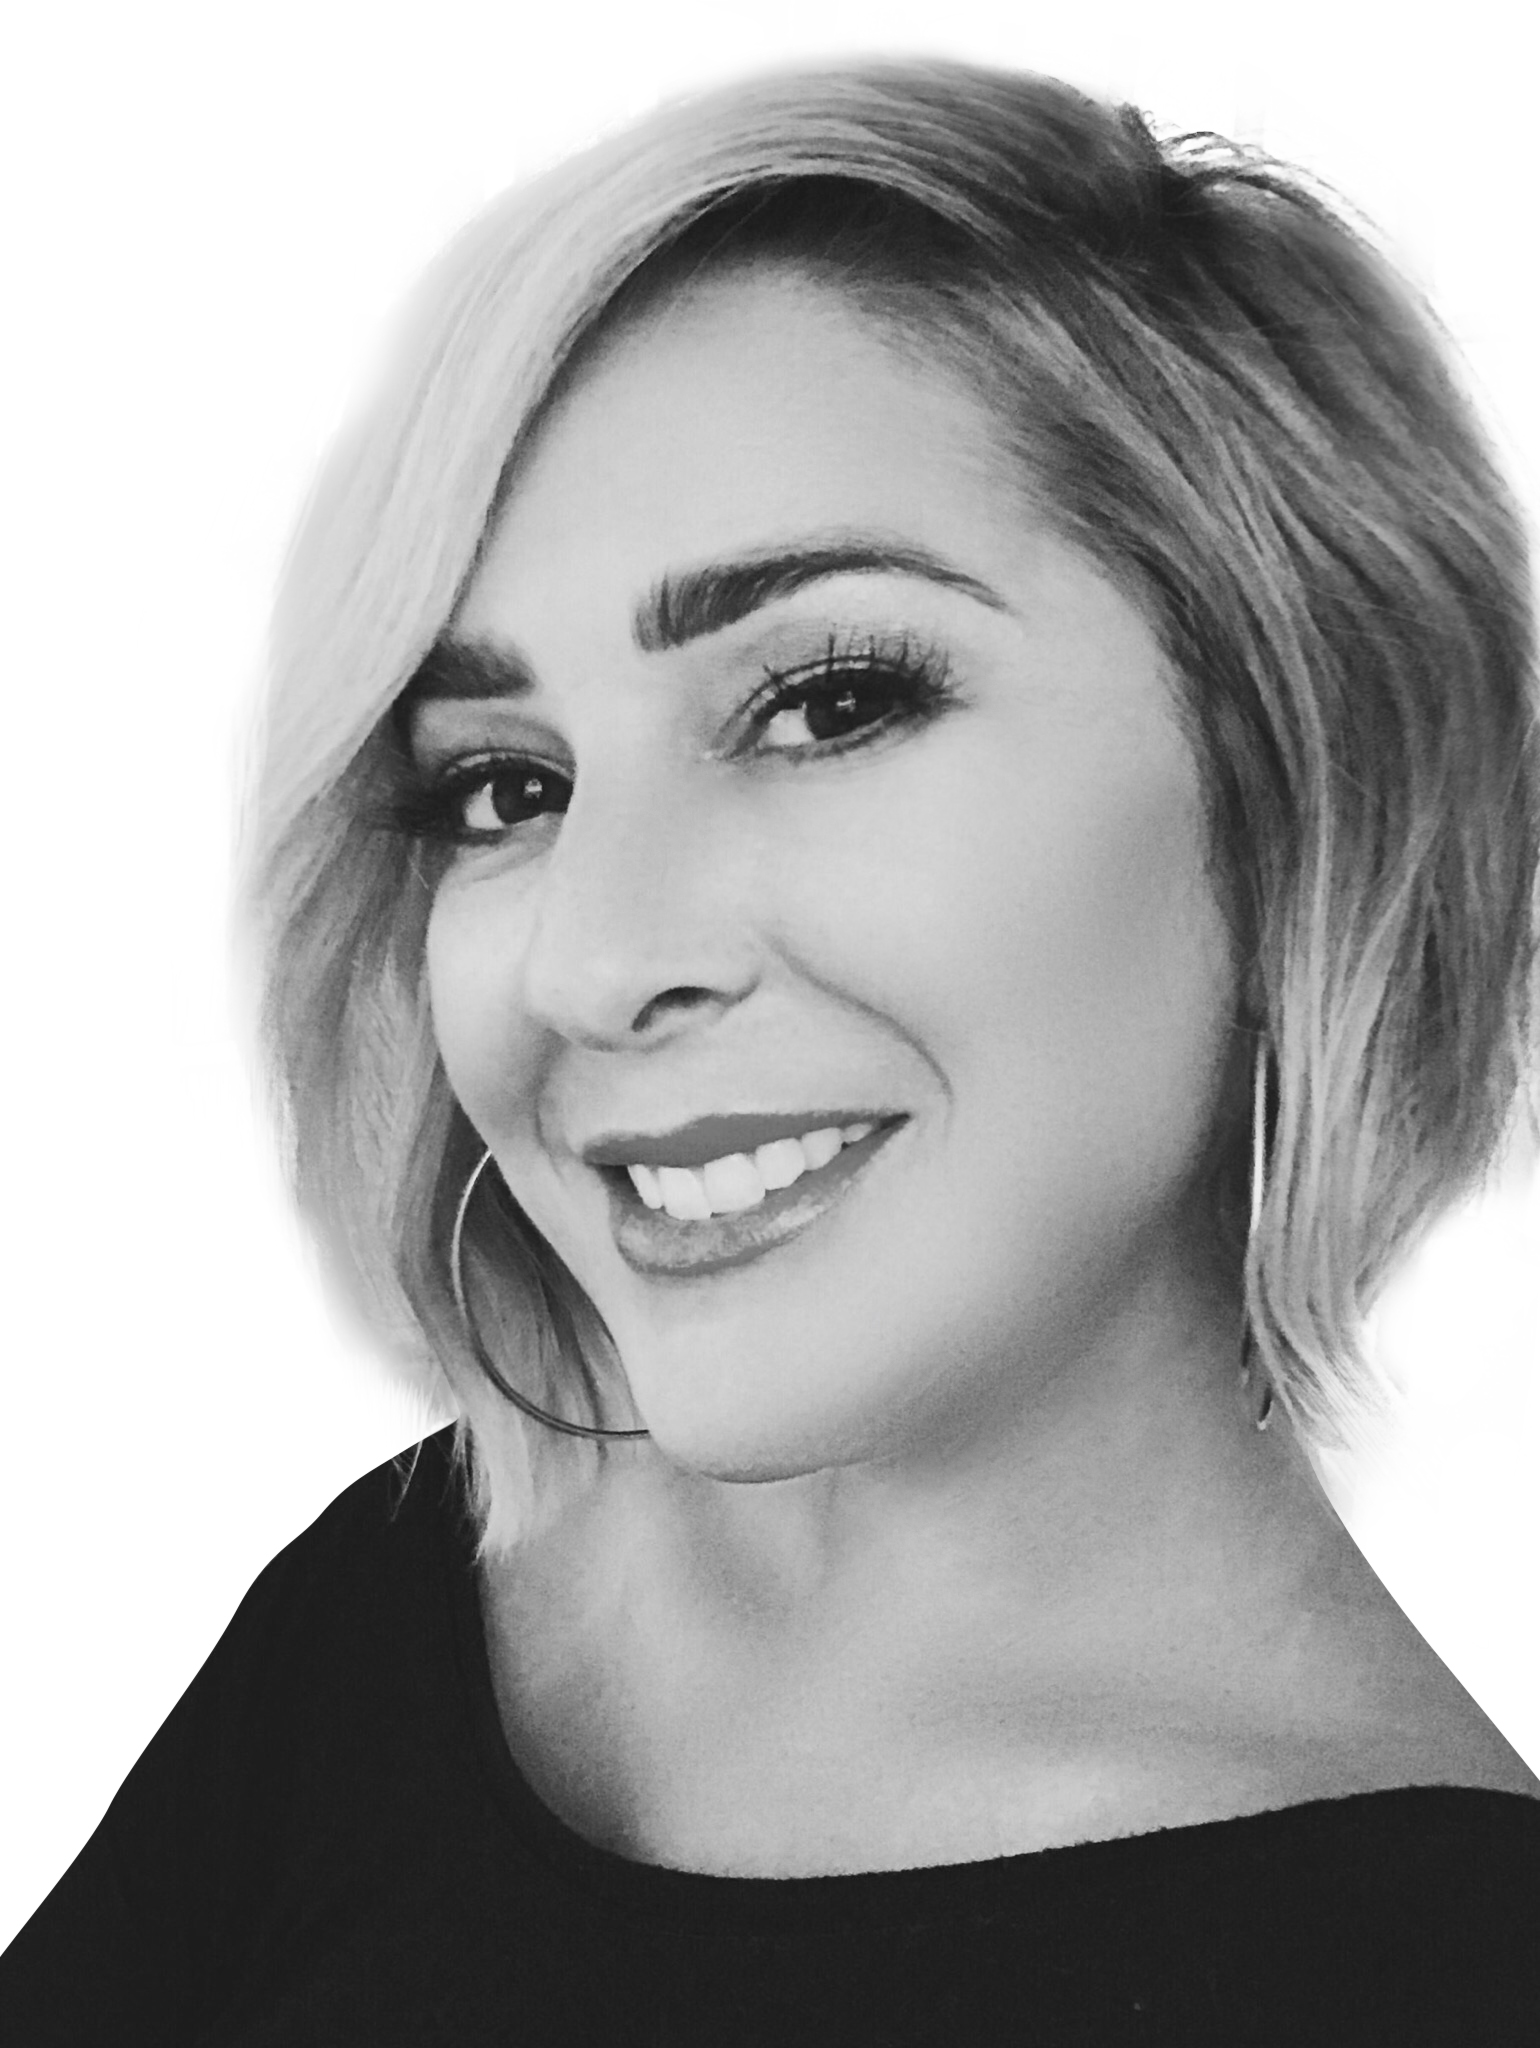 Alexis, Brow Artist & Lash stylist   Alexis has been an Esthetician for 16 years. She specializes in eyebrow shaping and lash extensions, however loves all areas of esthetics and is excited to finish her microblading course. She takes pride in being a San Diego native and loves spending the weekend enjoying our beautiful city. She is a pop culture enthusiast and has a phd in real housewives studies